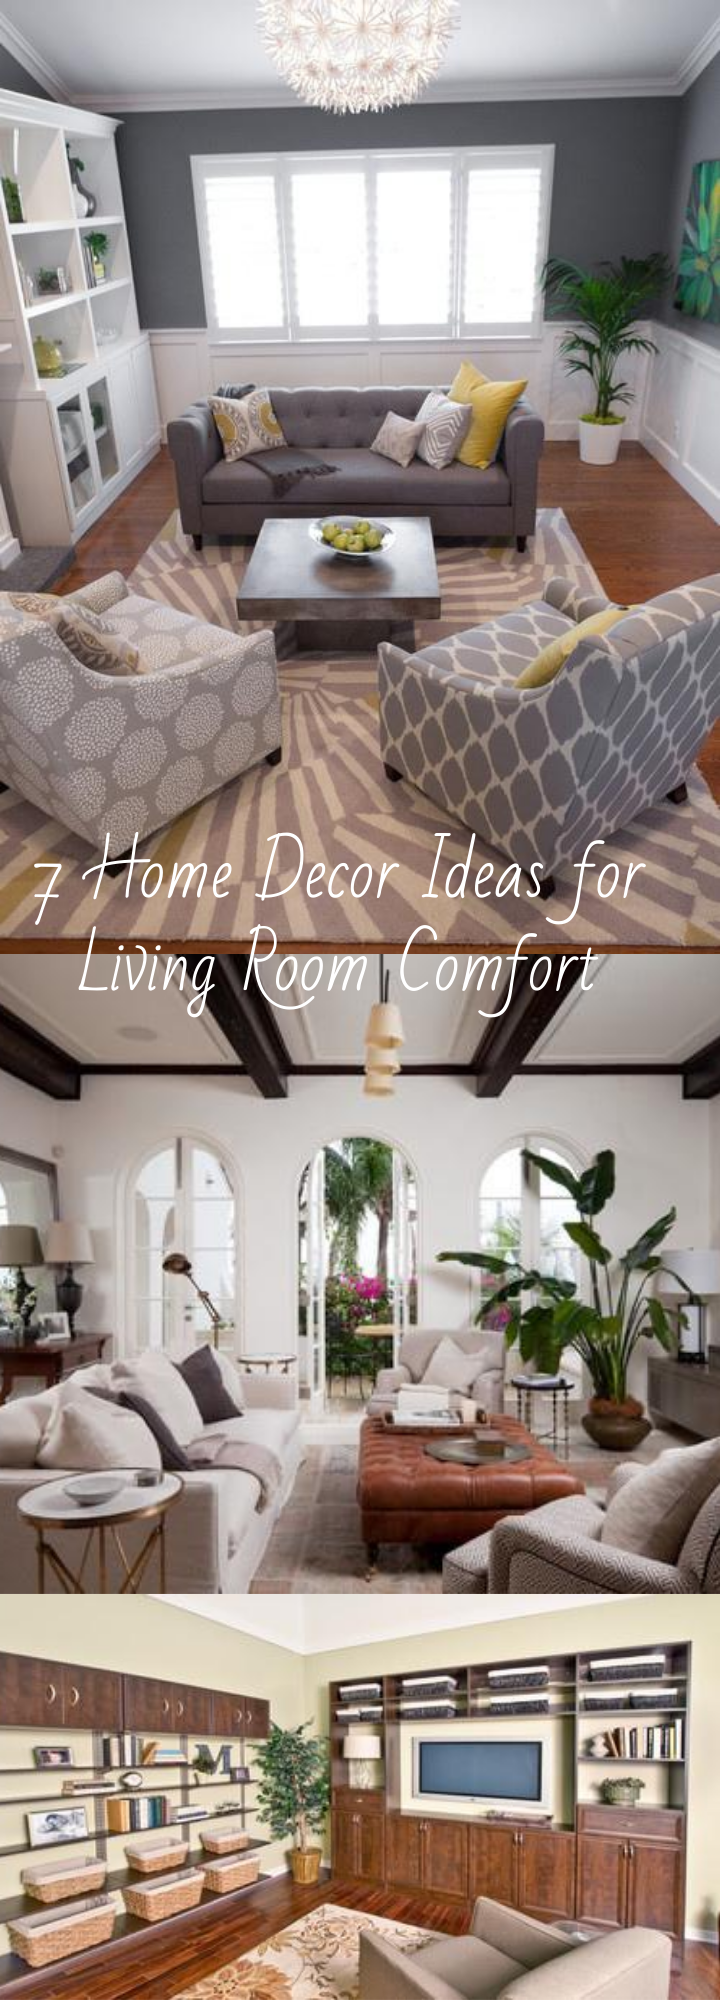 To help you get the perfect balance, here are seven ideas that will keep your living room looking great without losing its sense of comfort.  #design #comfort #homedesign #homeideas #coziness #cozyhome